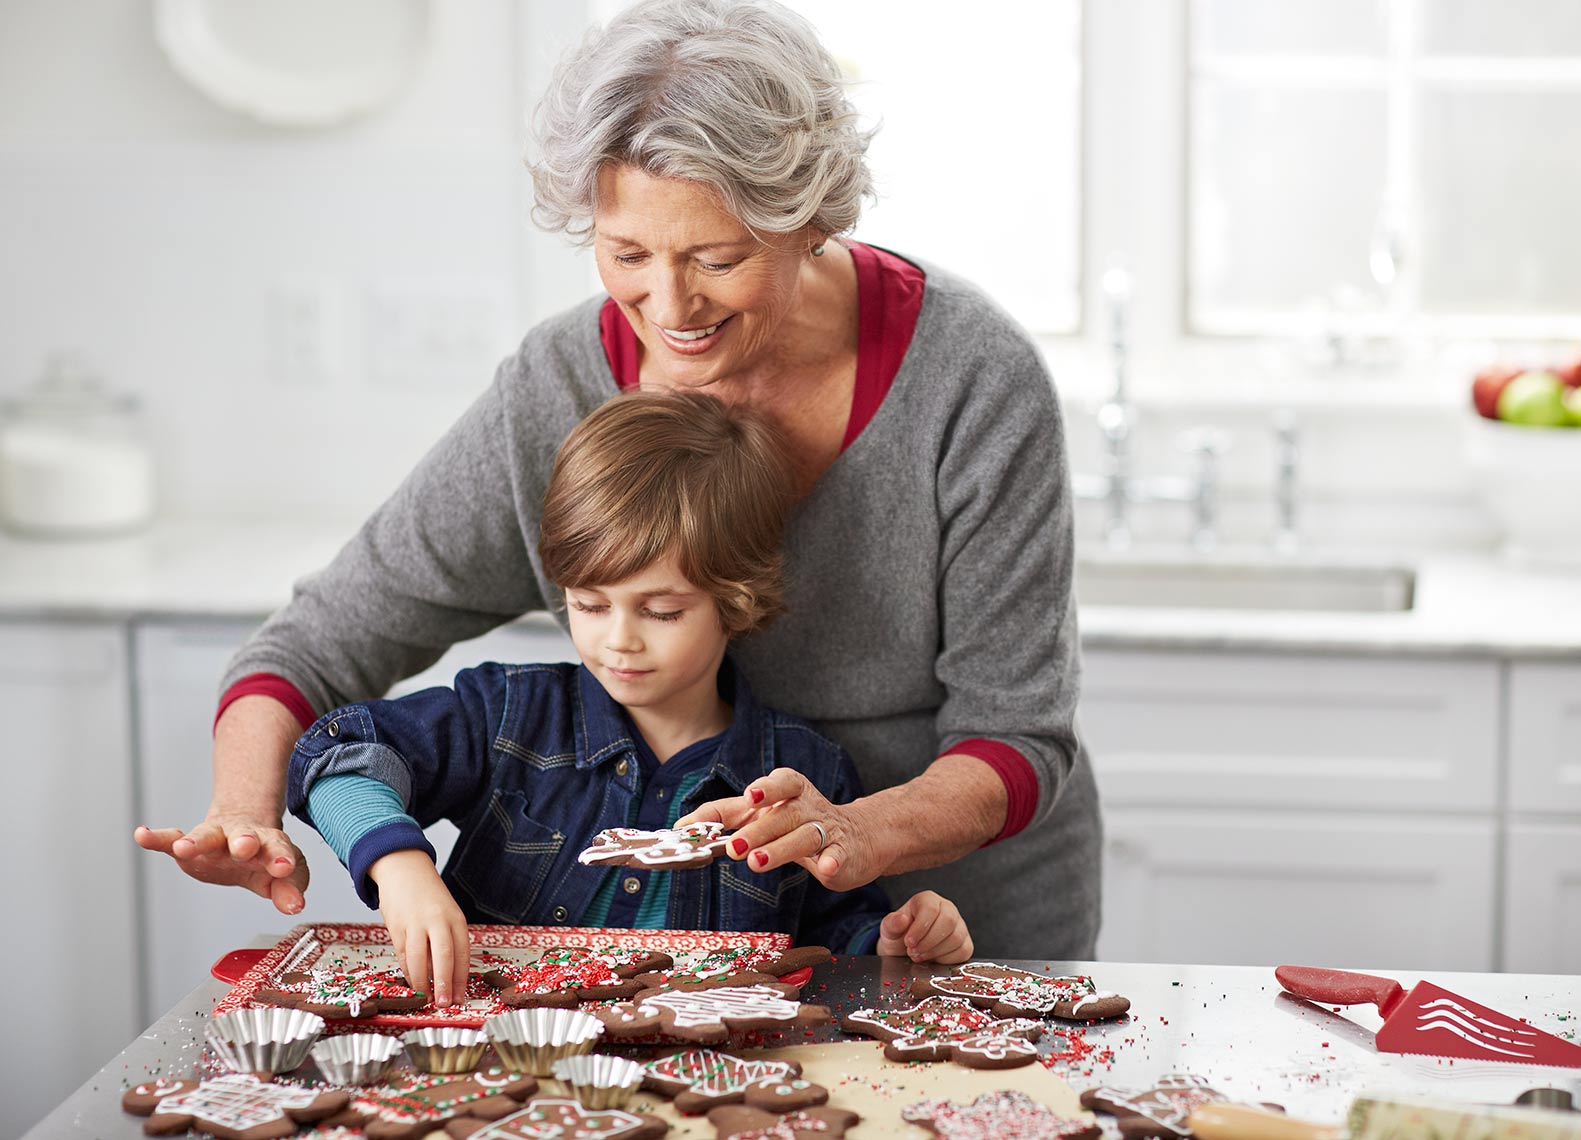 A grandma and her grandson baking cookies in the kitchen